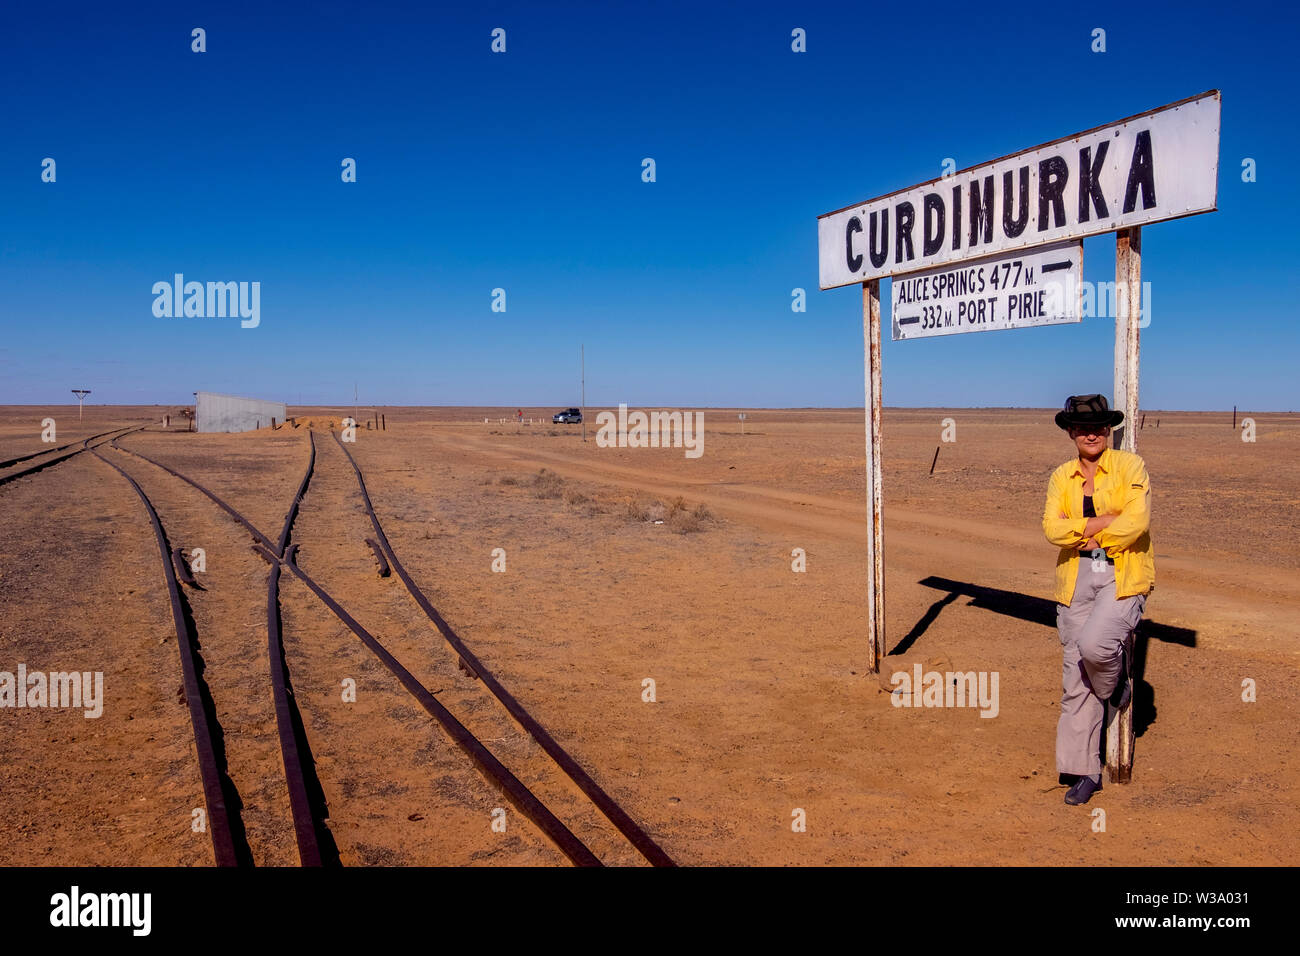 Woman at Curdimurka Terminal along Oodnadatta Track, Andamooka south from Kati Thanda-Lake Eyre in outback in northern South Australia. - Stock Image